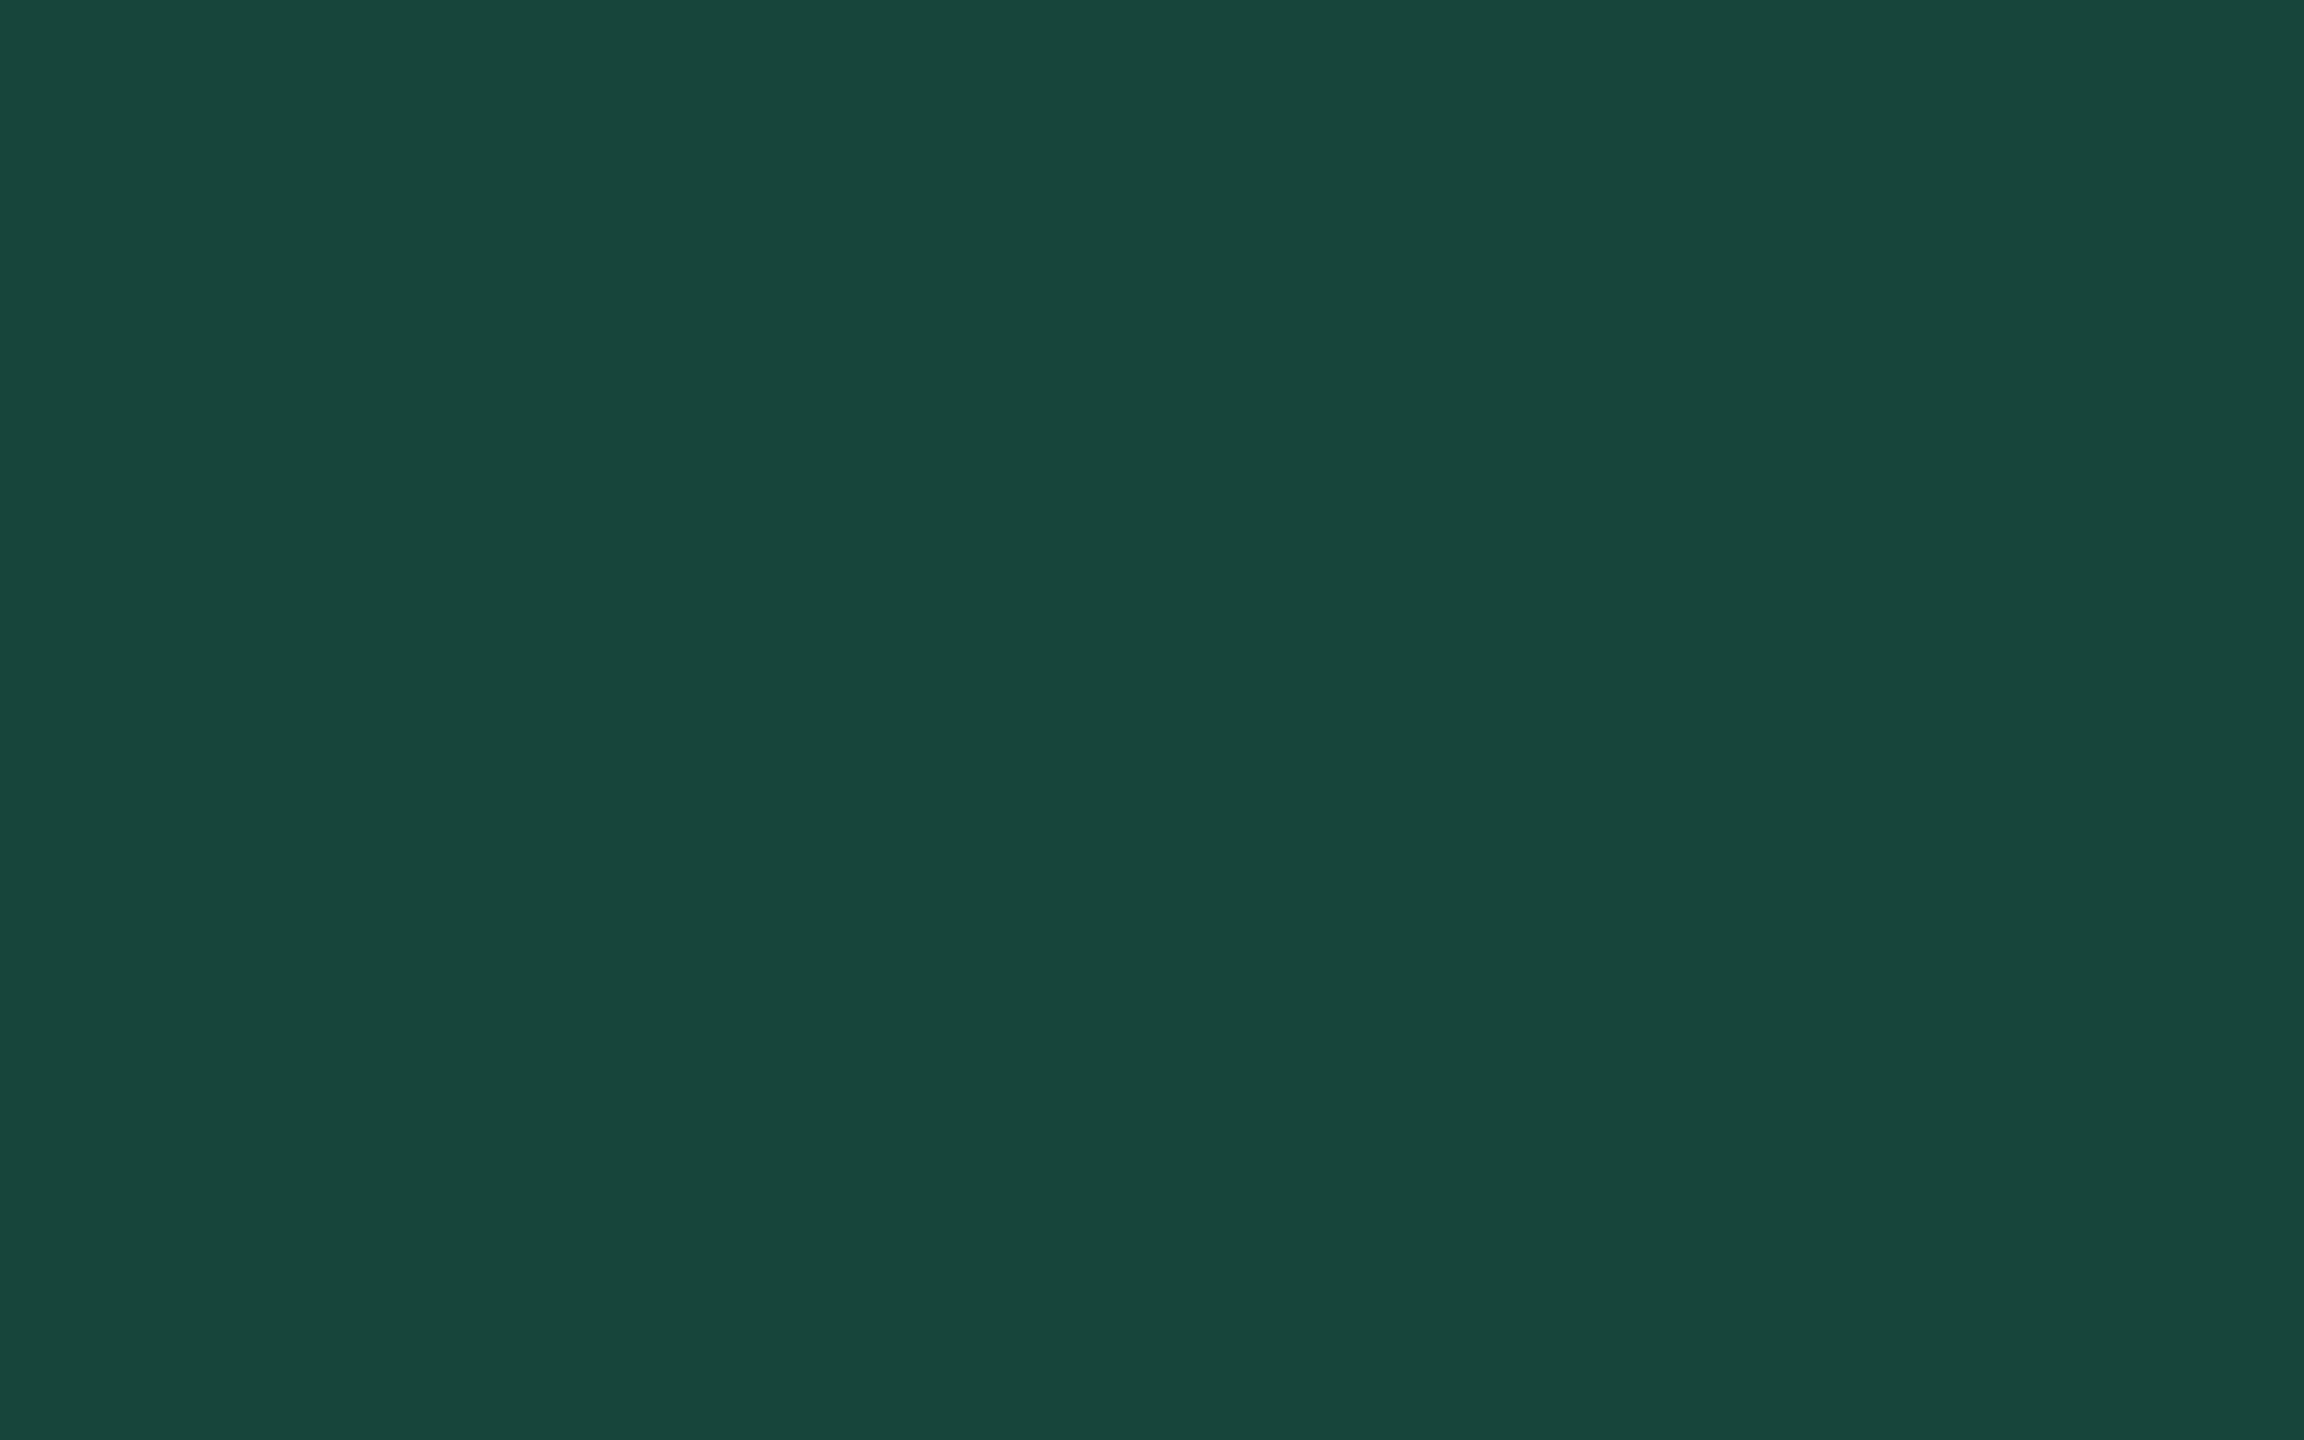 2304x1440 MSU Green Solid Color Background